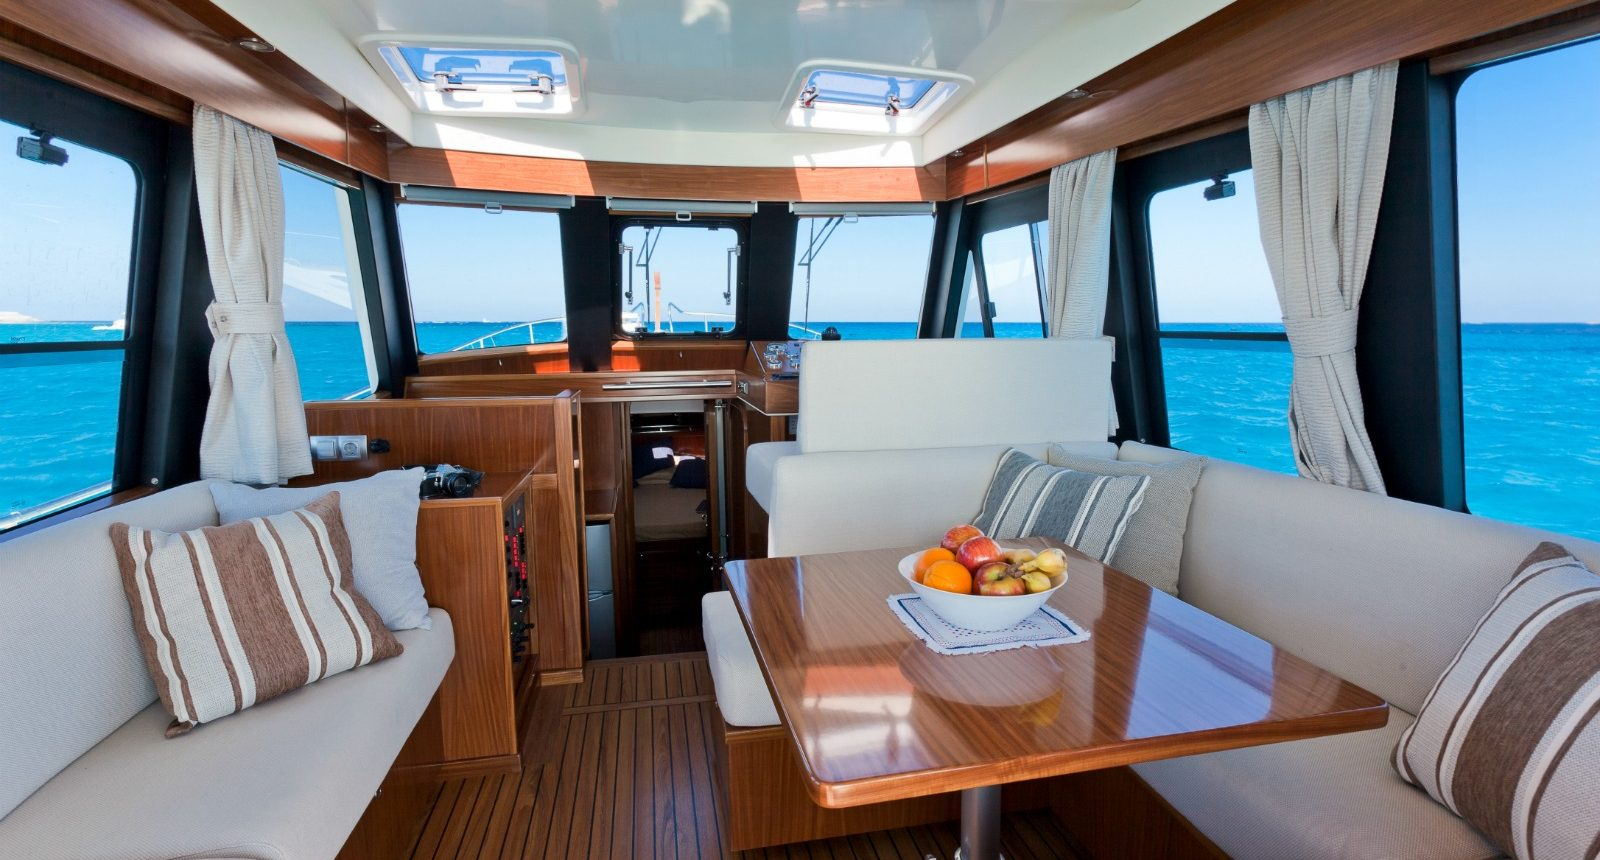 Minorca Islander 42 yacht for sale - salon